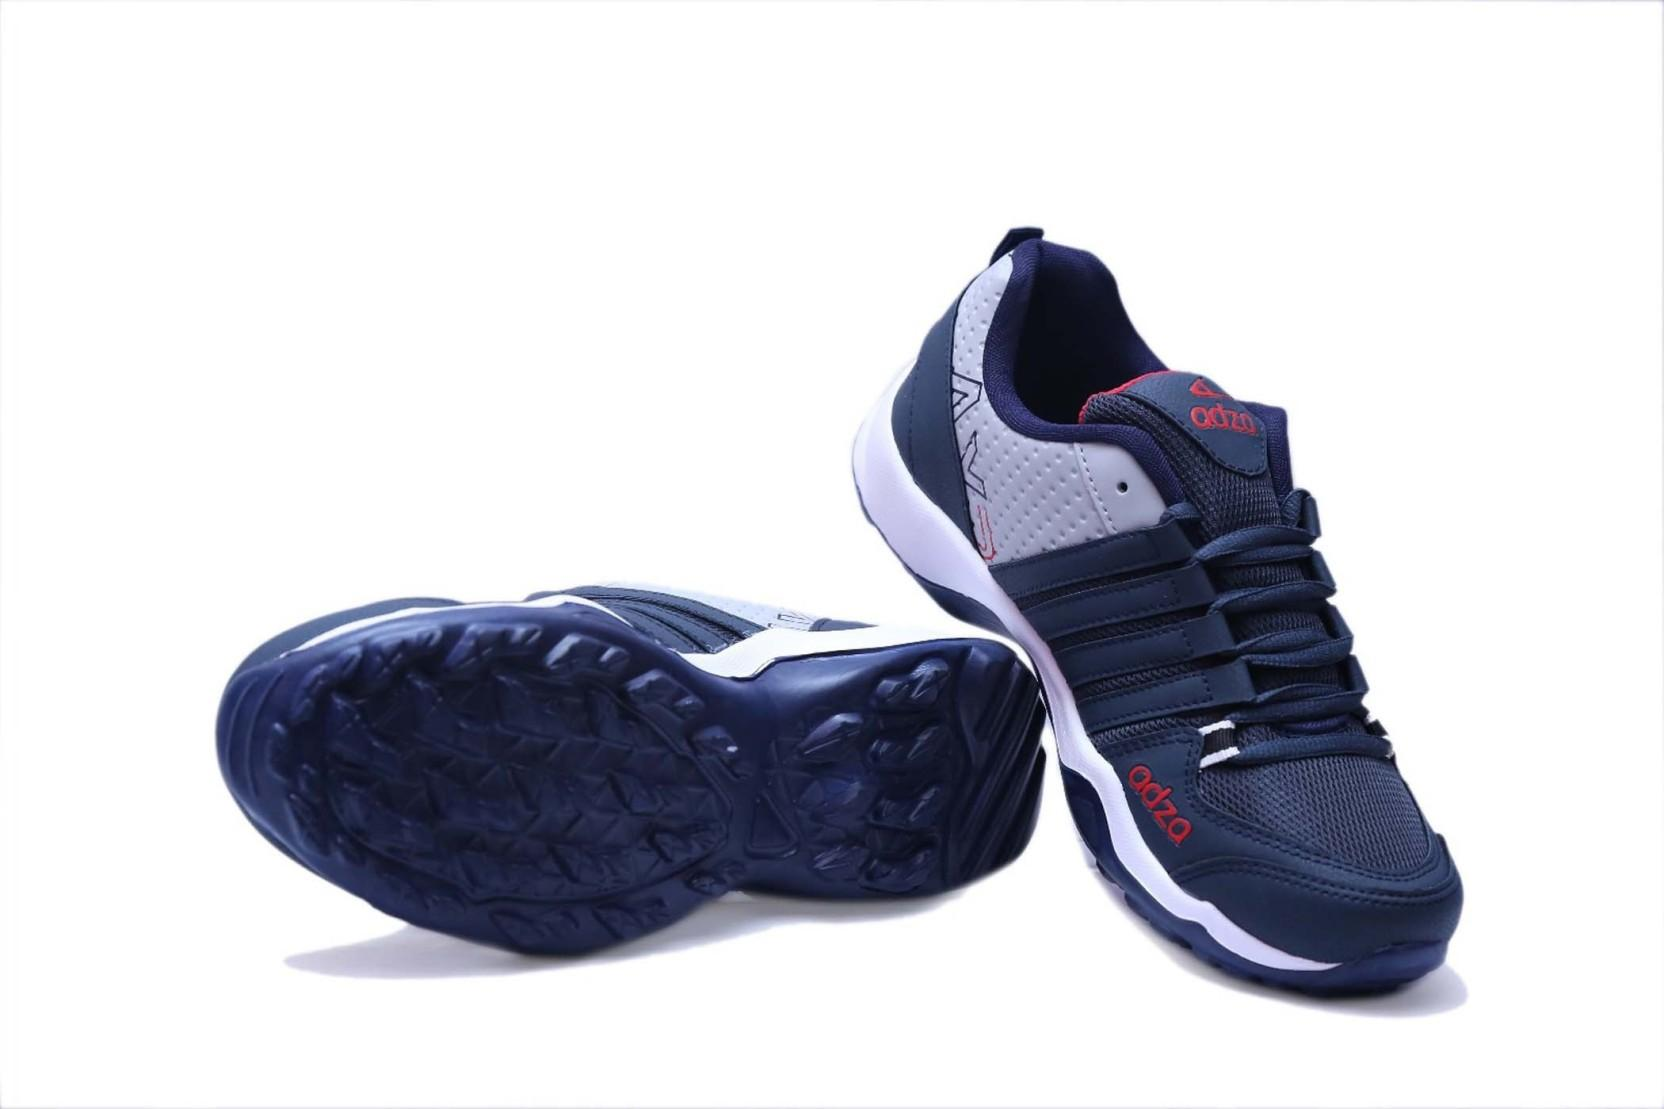 ADZA Men Casual Sports Running Shoes(Navy, Grey)